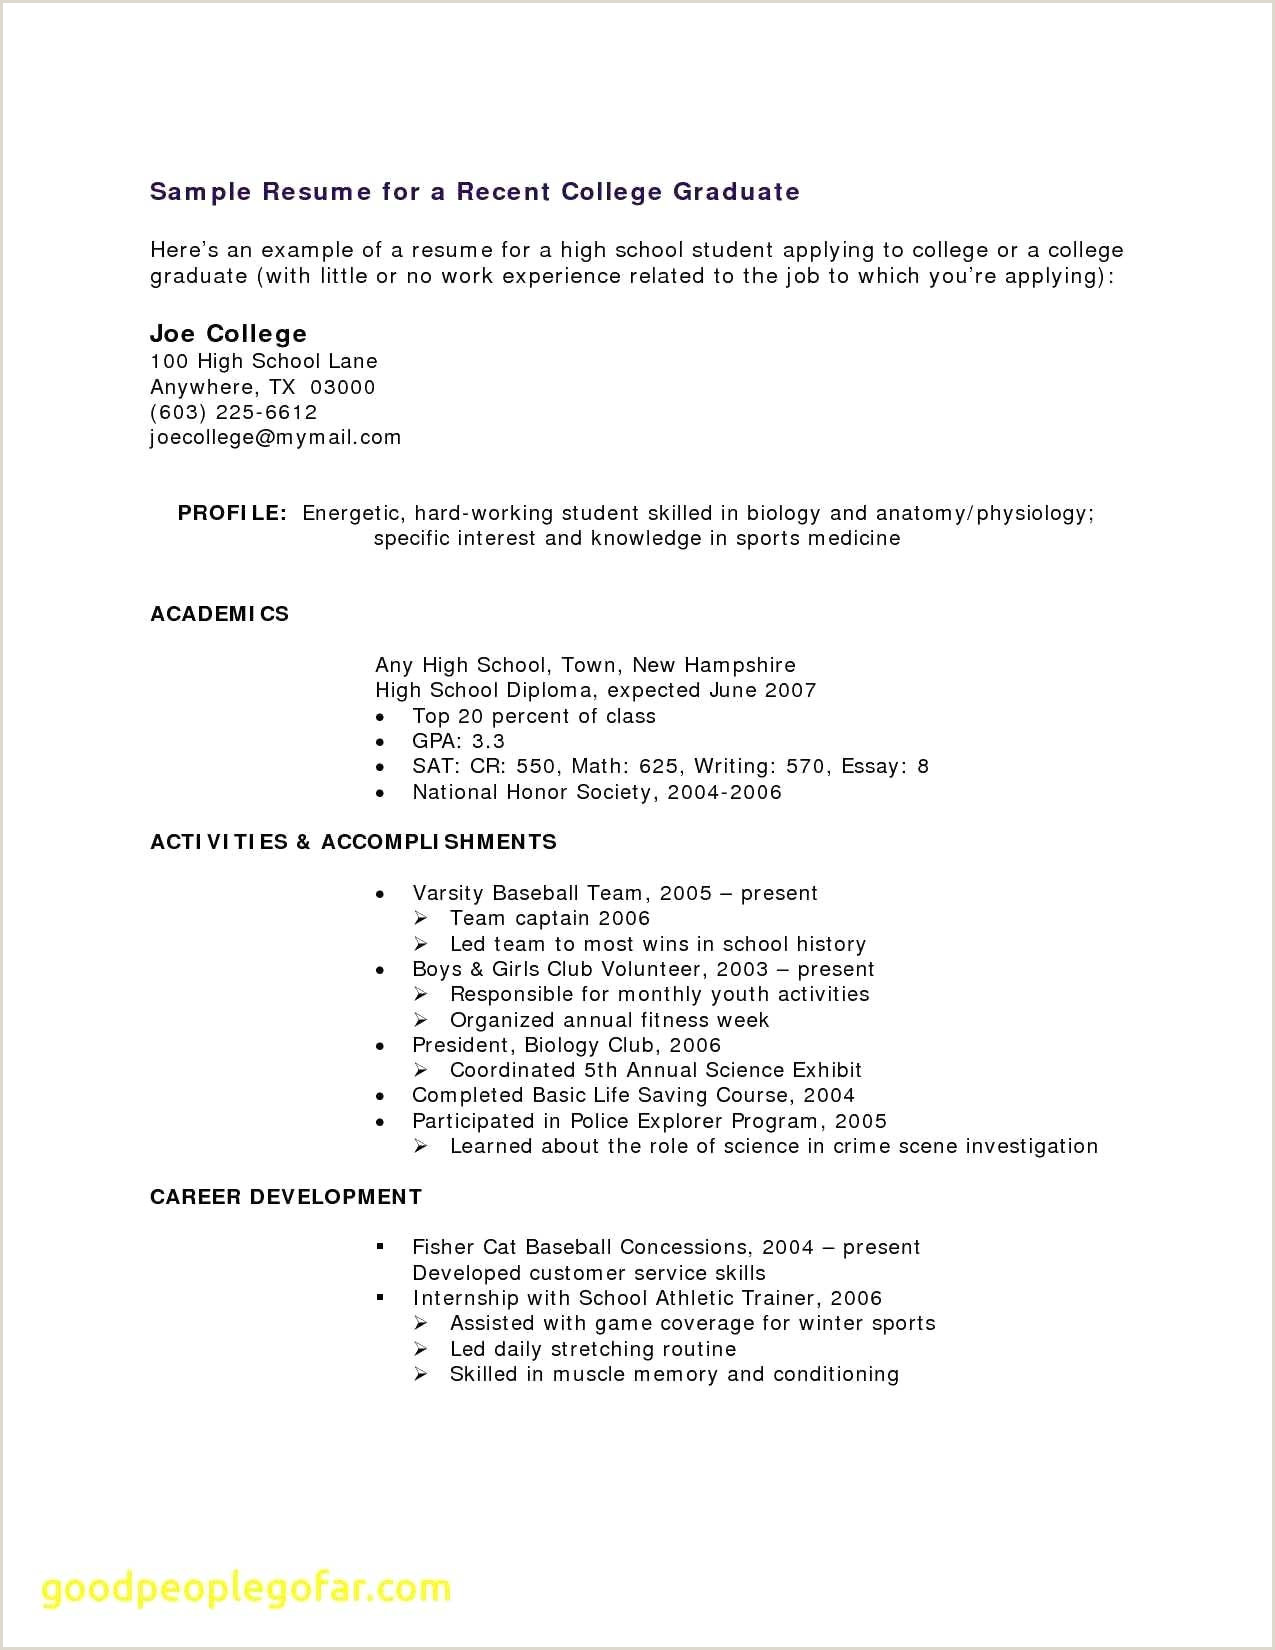 Cv format for Job Experience Customer Service Resume Sample 650 841 Customer Service